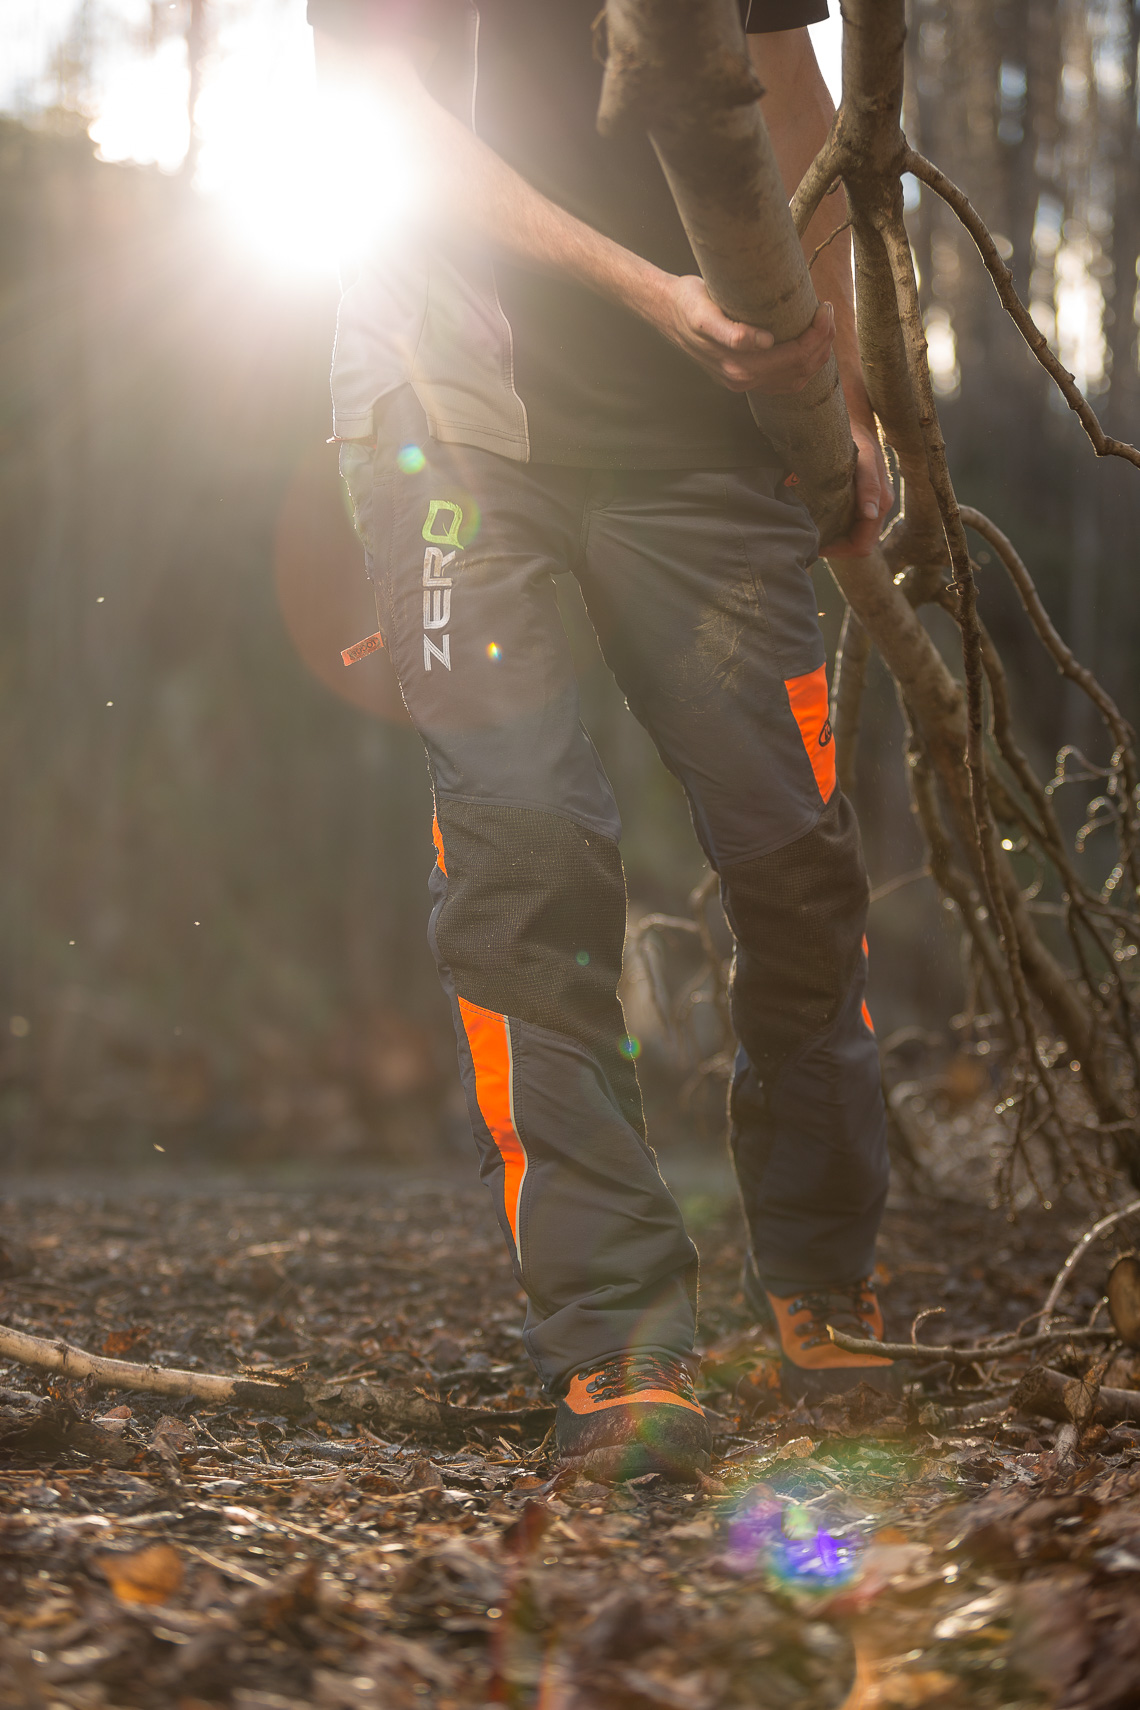 Arborist dragging felled branches wearing safety gear backlit with solar flare by Paul Green Photography